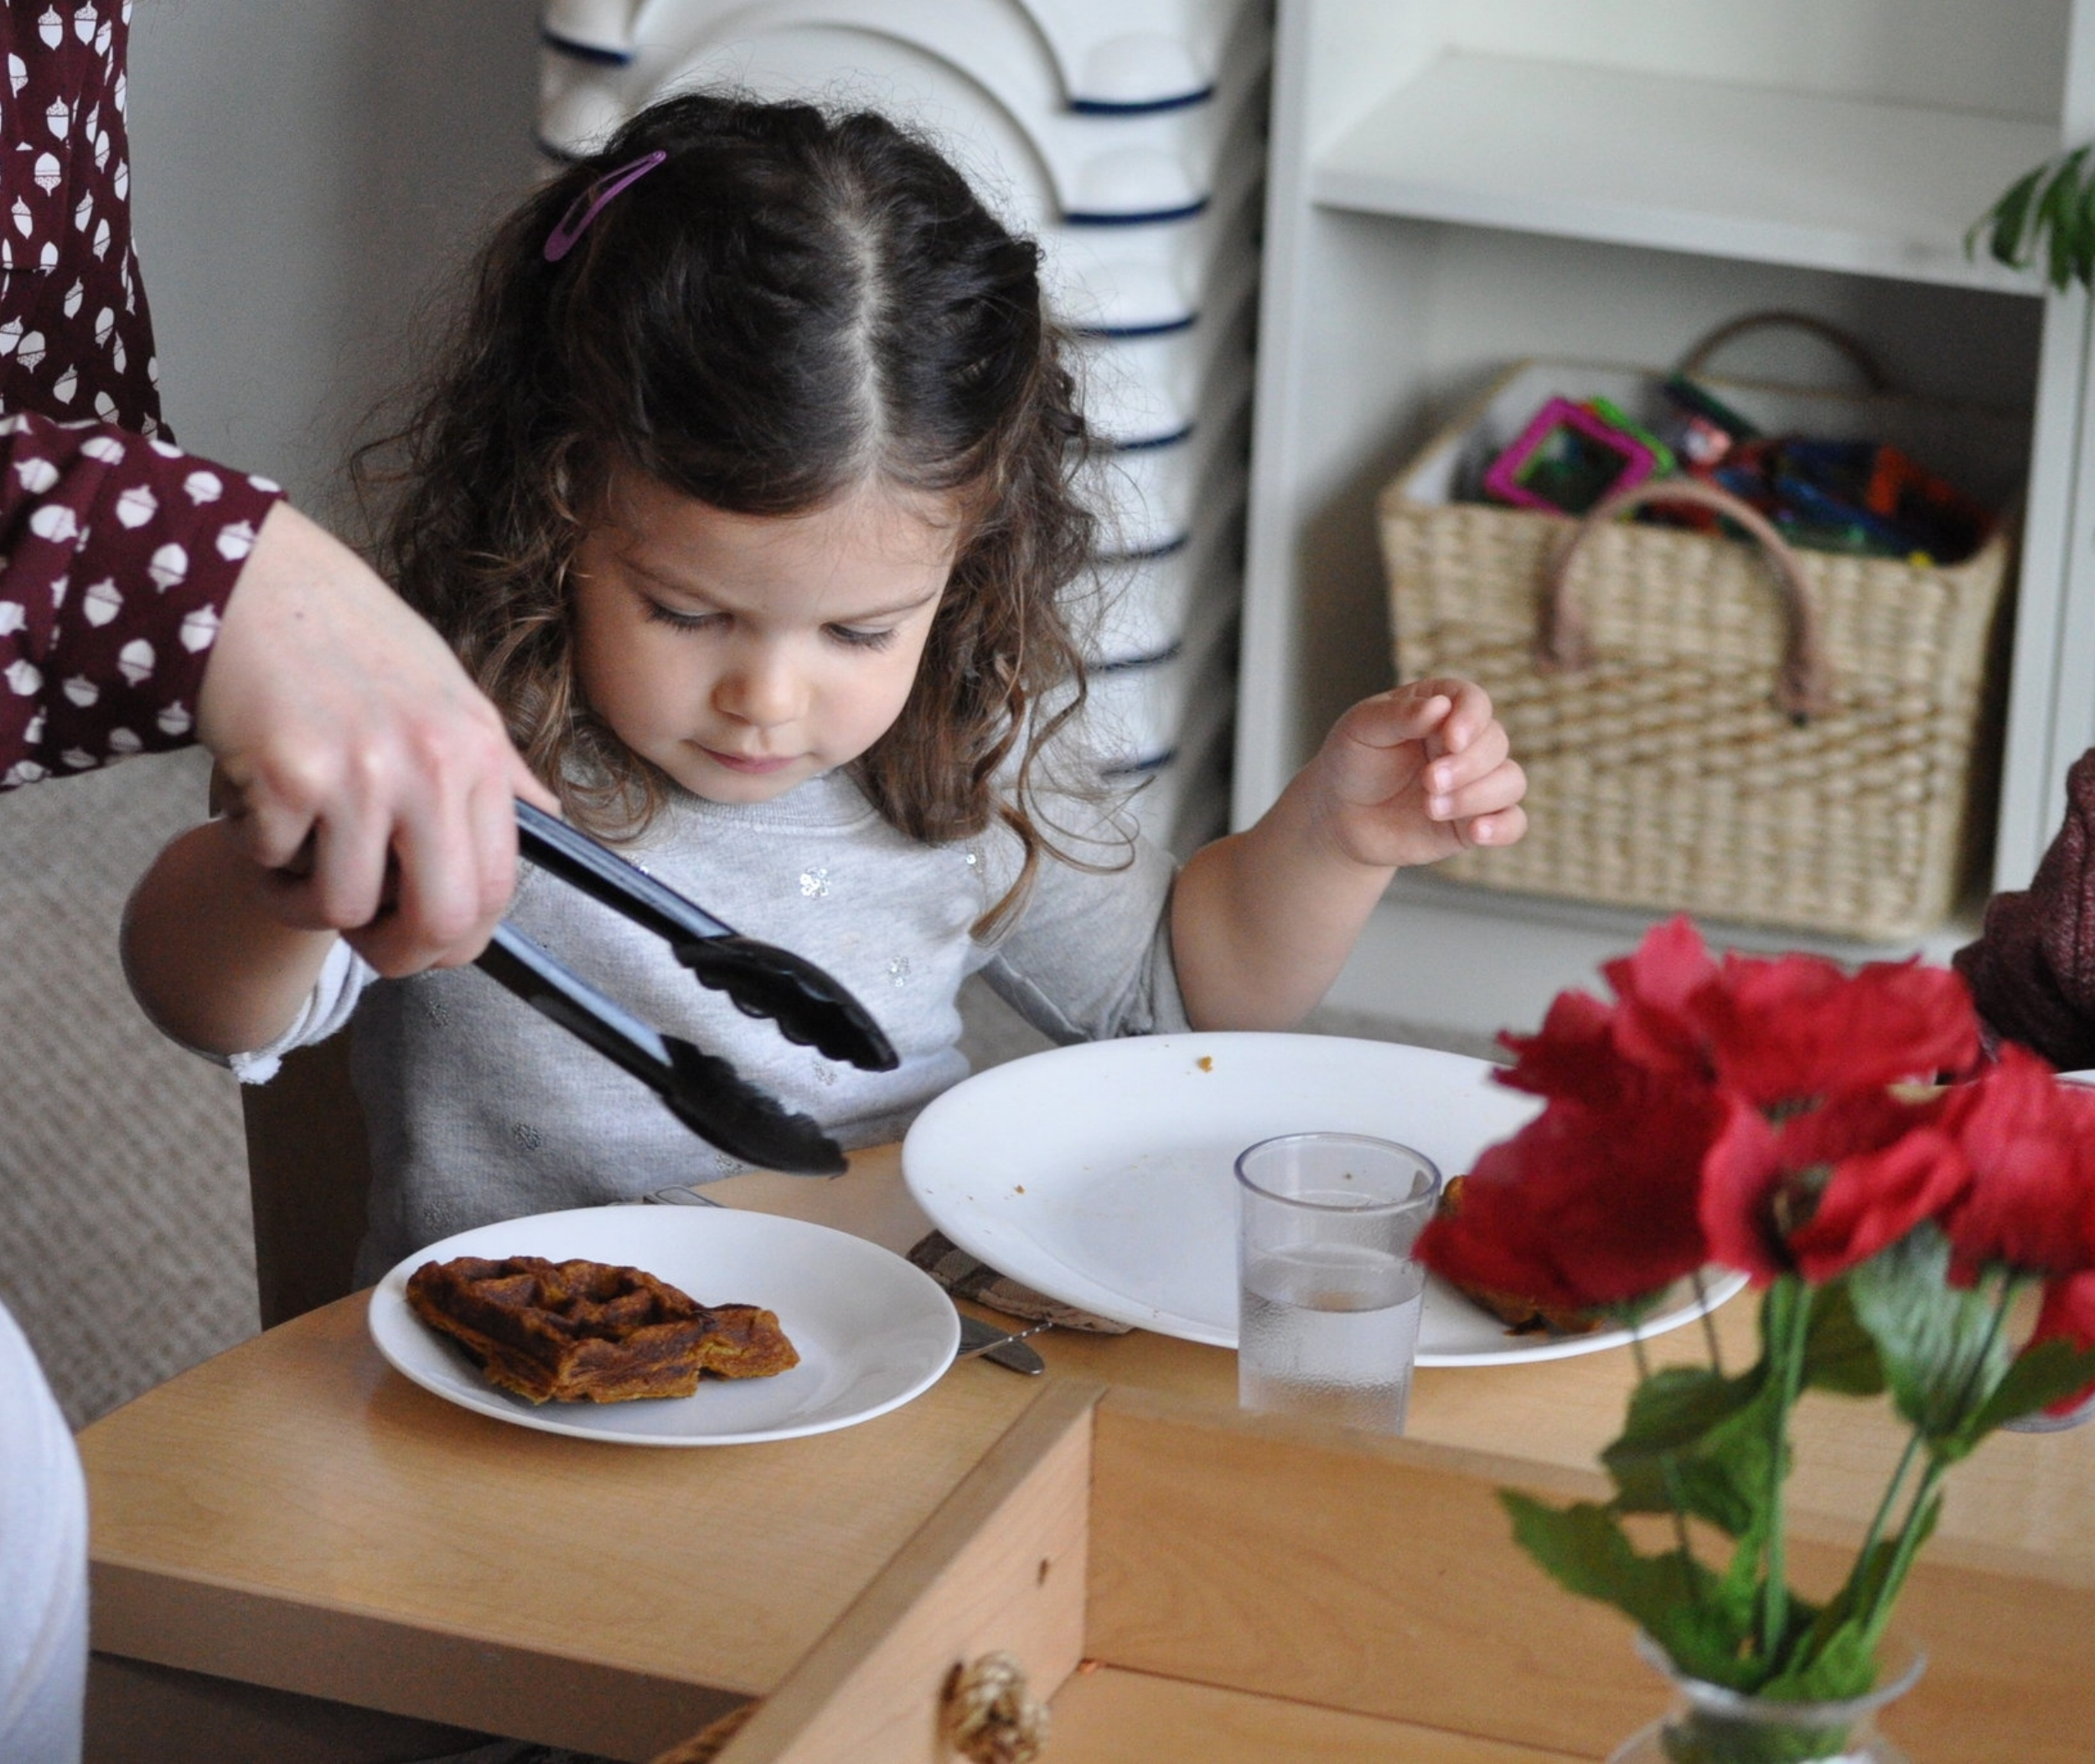 2½ - 3½ YEARS: COOKING, ART & STORYTELLING - Setting the stage for increasing independence, (healthy) recipes become more complex, process-focused art experiences take flight, storytelling expands, playful exploration deepens, and social connection abounds. Tuesdays or Wednesdays 10:45-11:45am